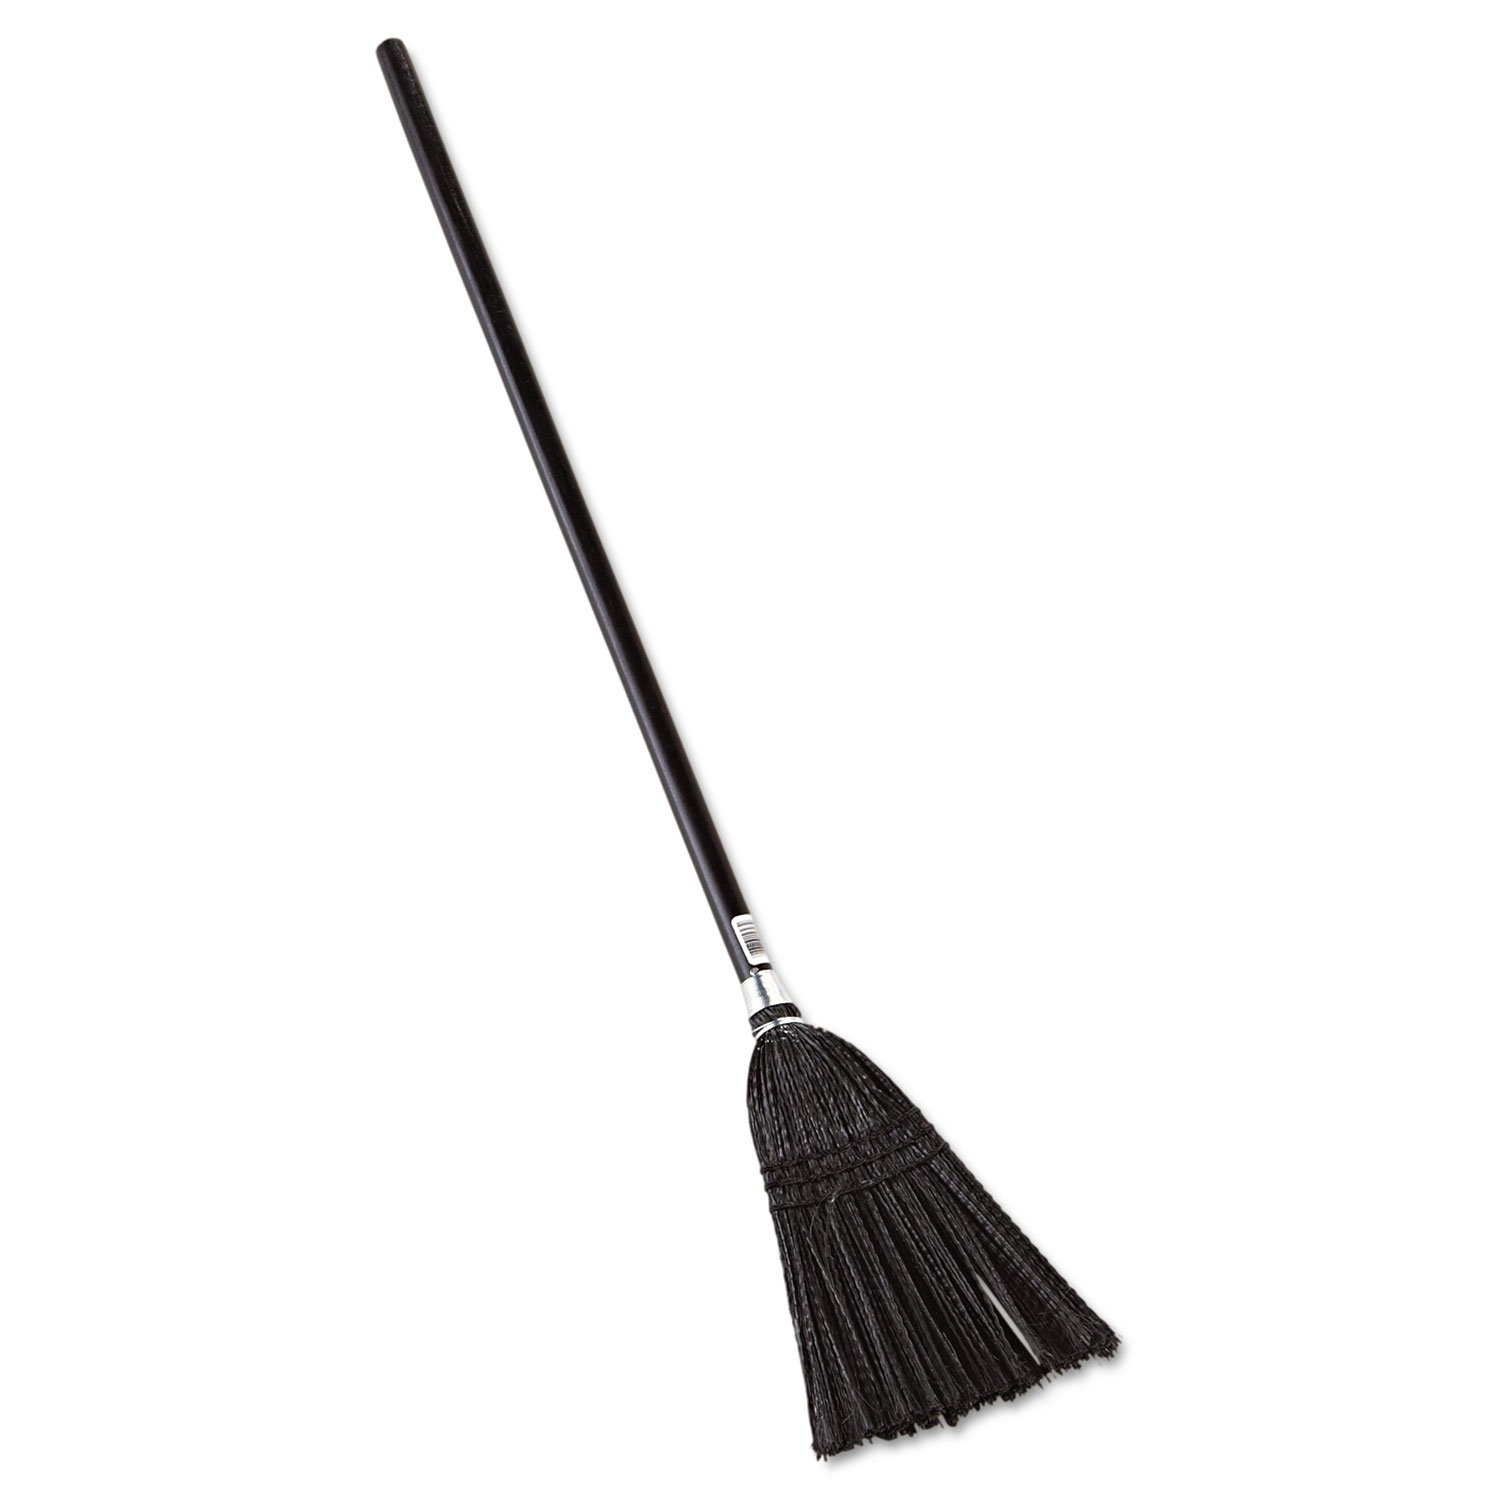 Rubbermaid Commercial Lobby Pro Synthetic-Fill Broom, 37 1/2quot; Handle, Black